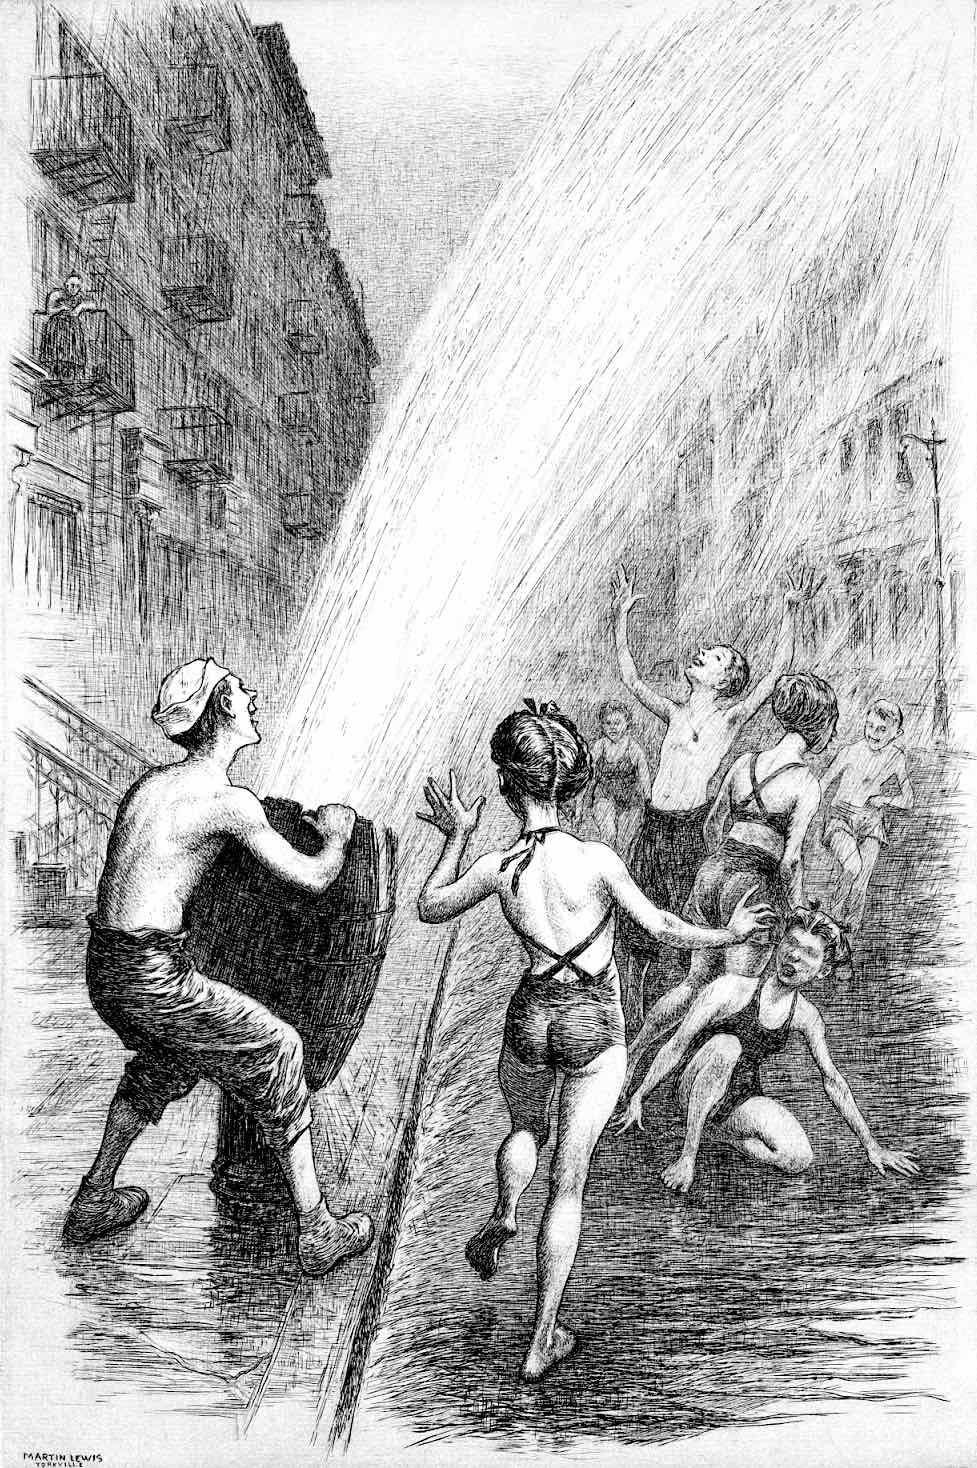 a Martin Lewis print 1946, urban children playing with an open fire hydrant